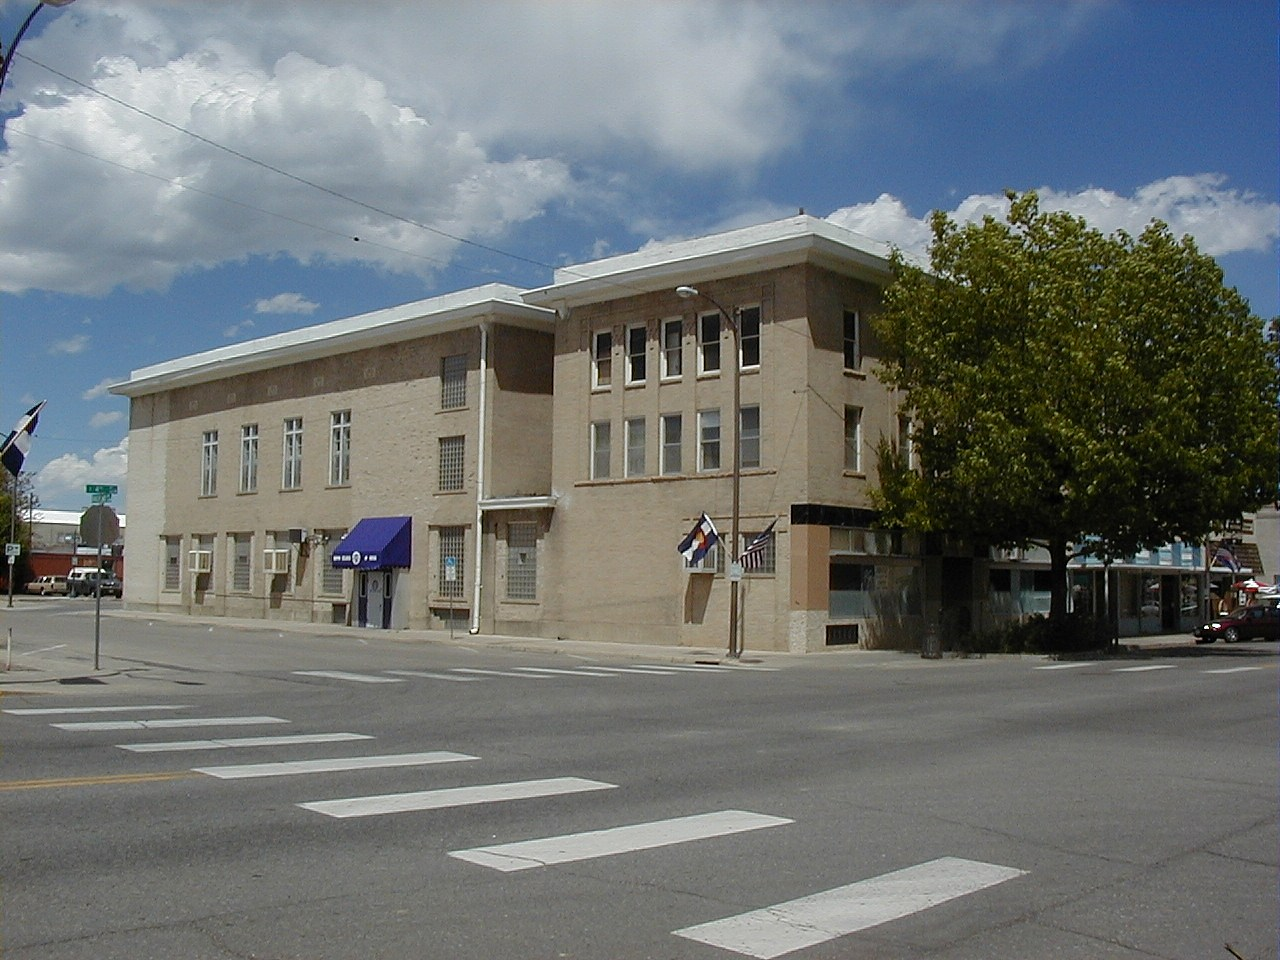 Elks Lodge in Loveland